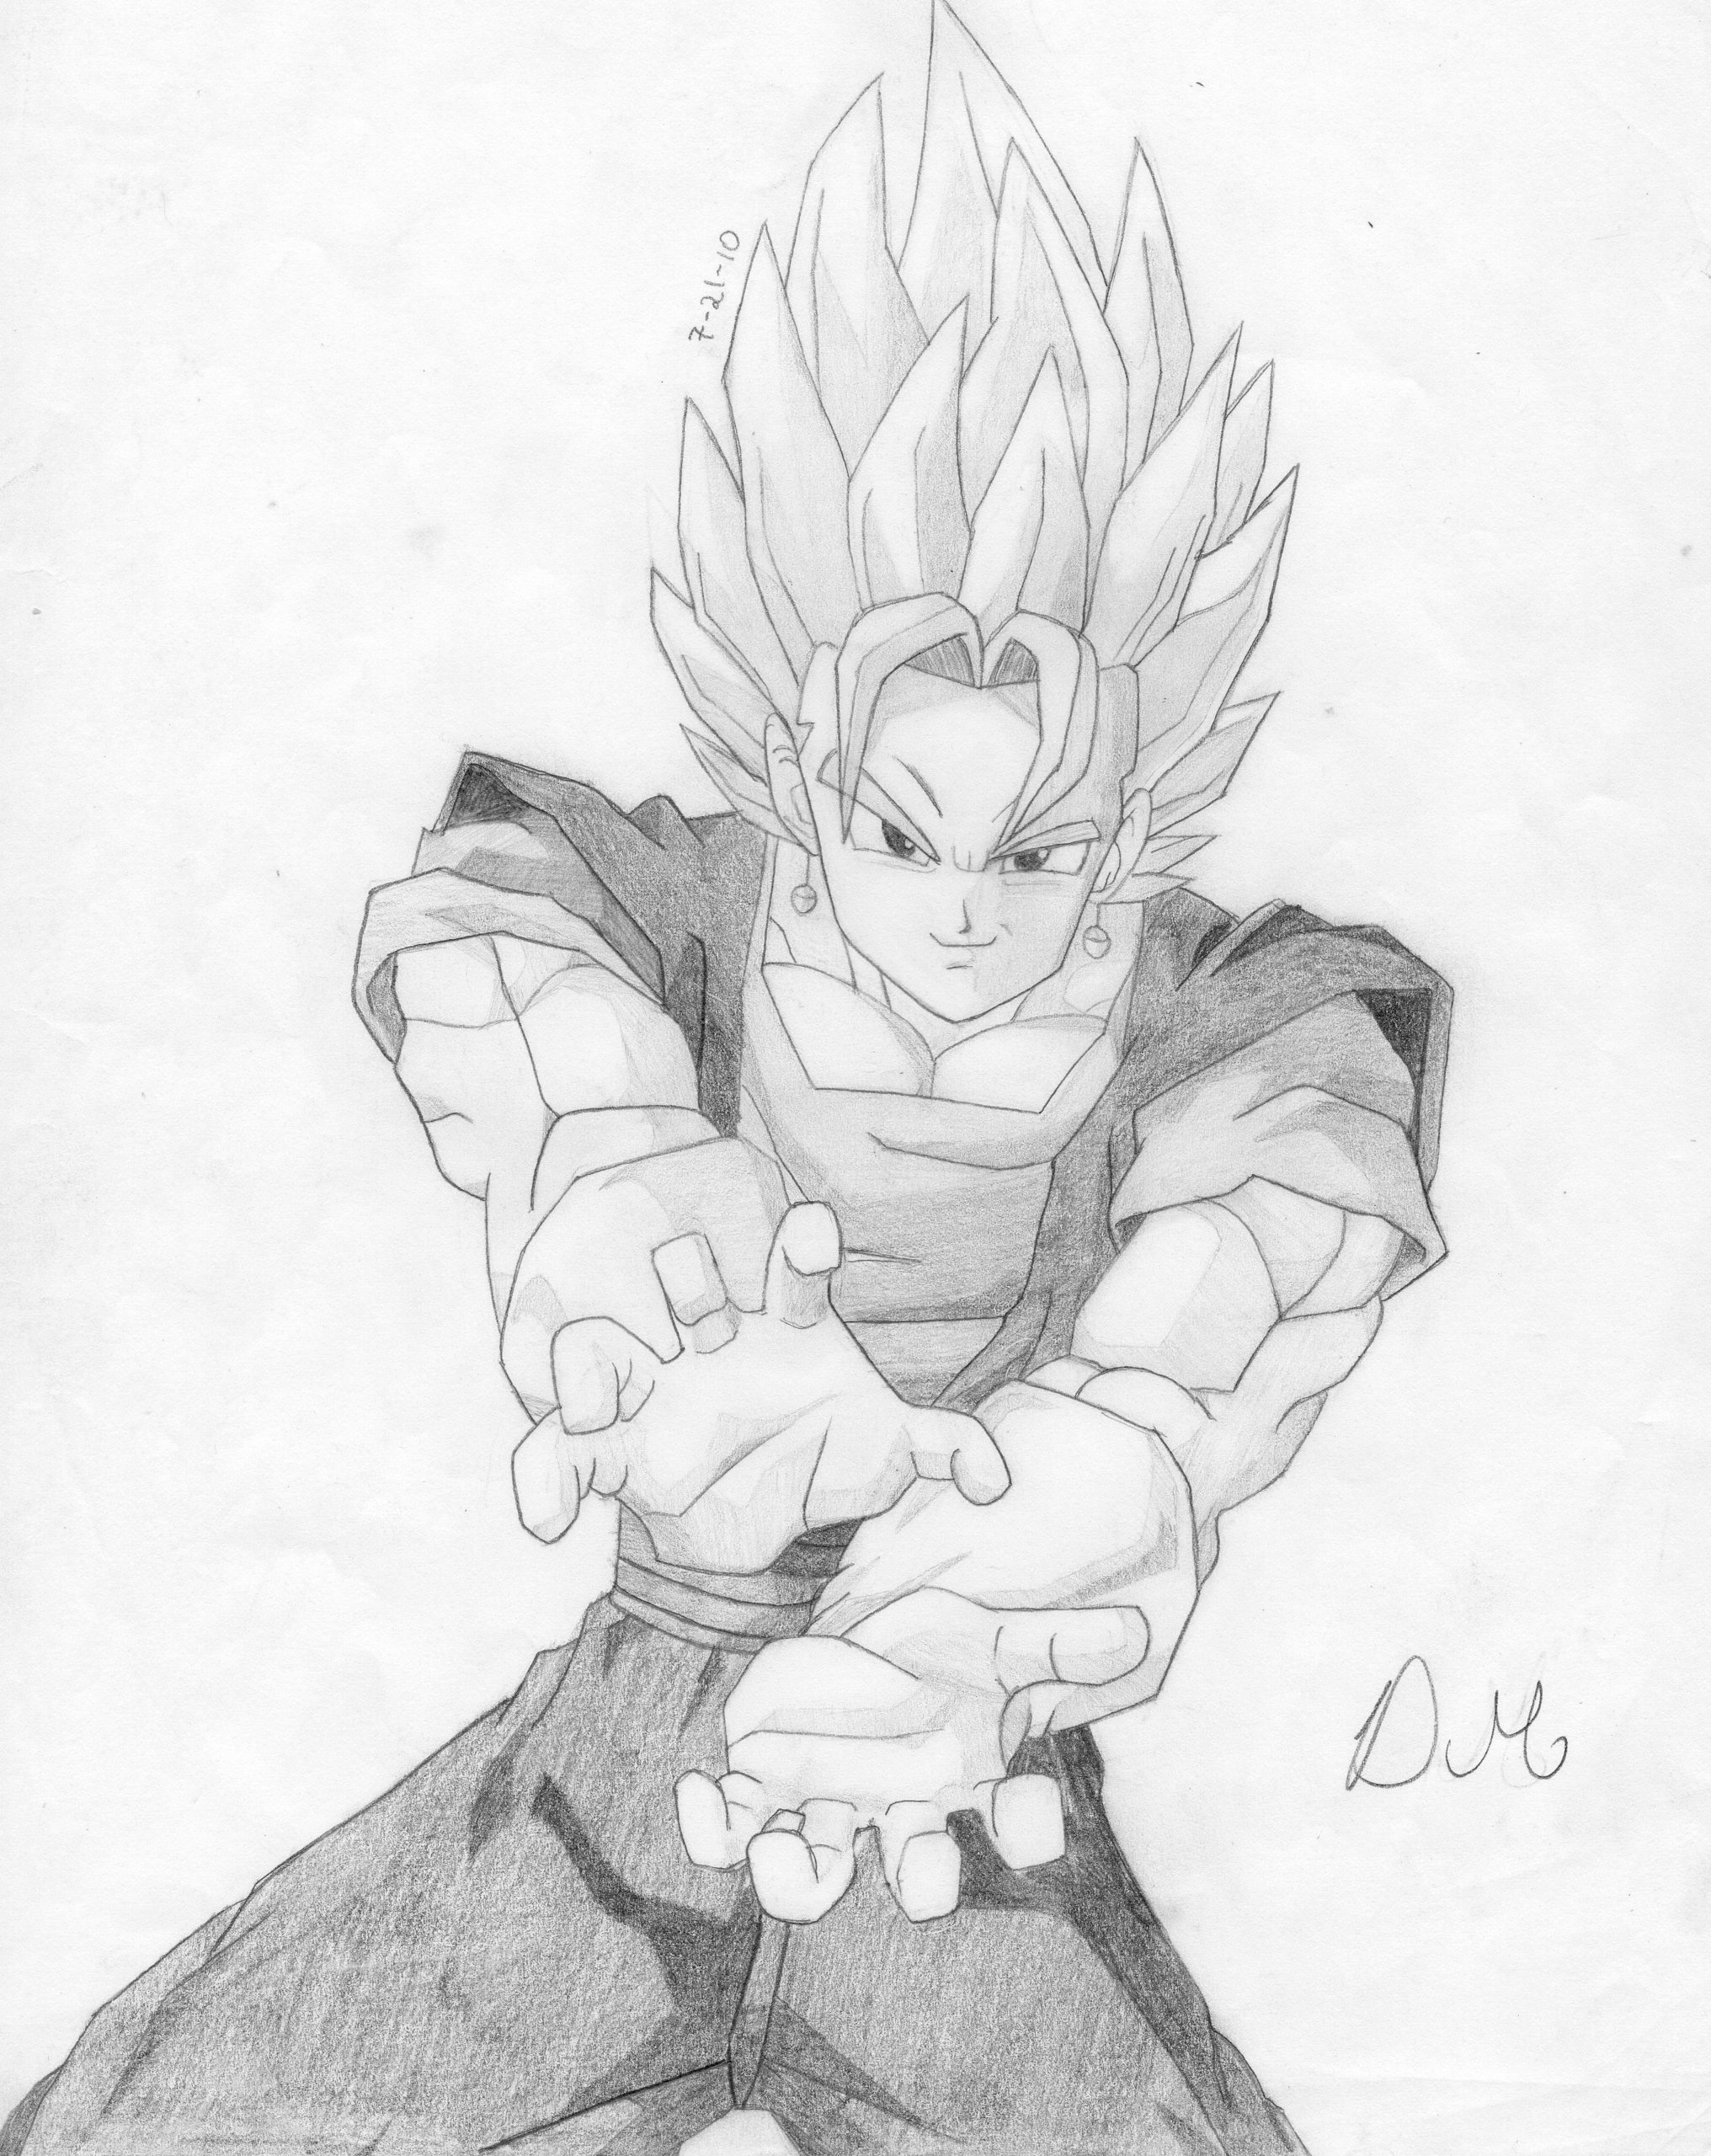 Dragon Ball Z Artworx88: My Super Vegito drawing!